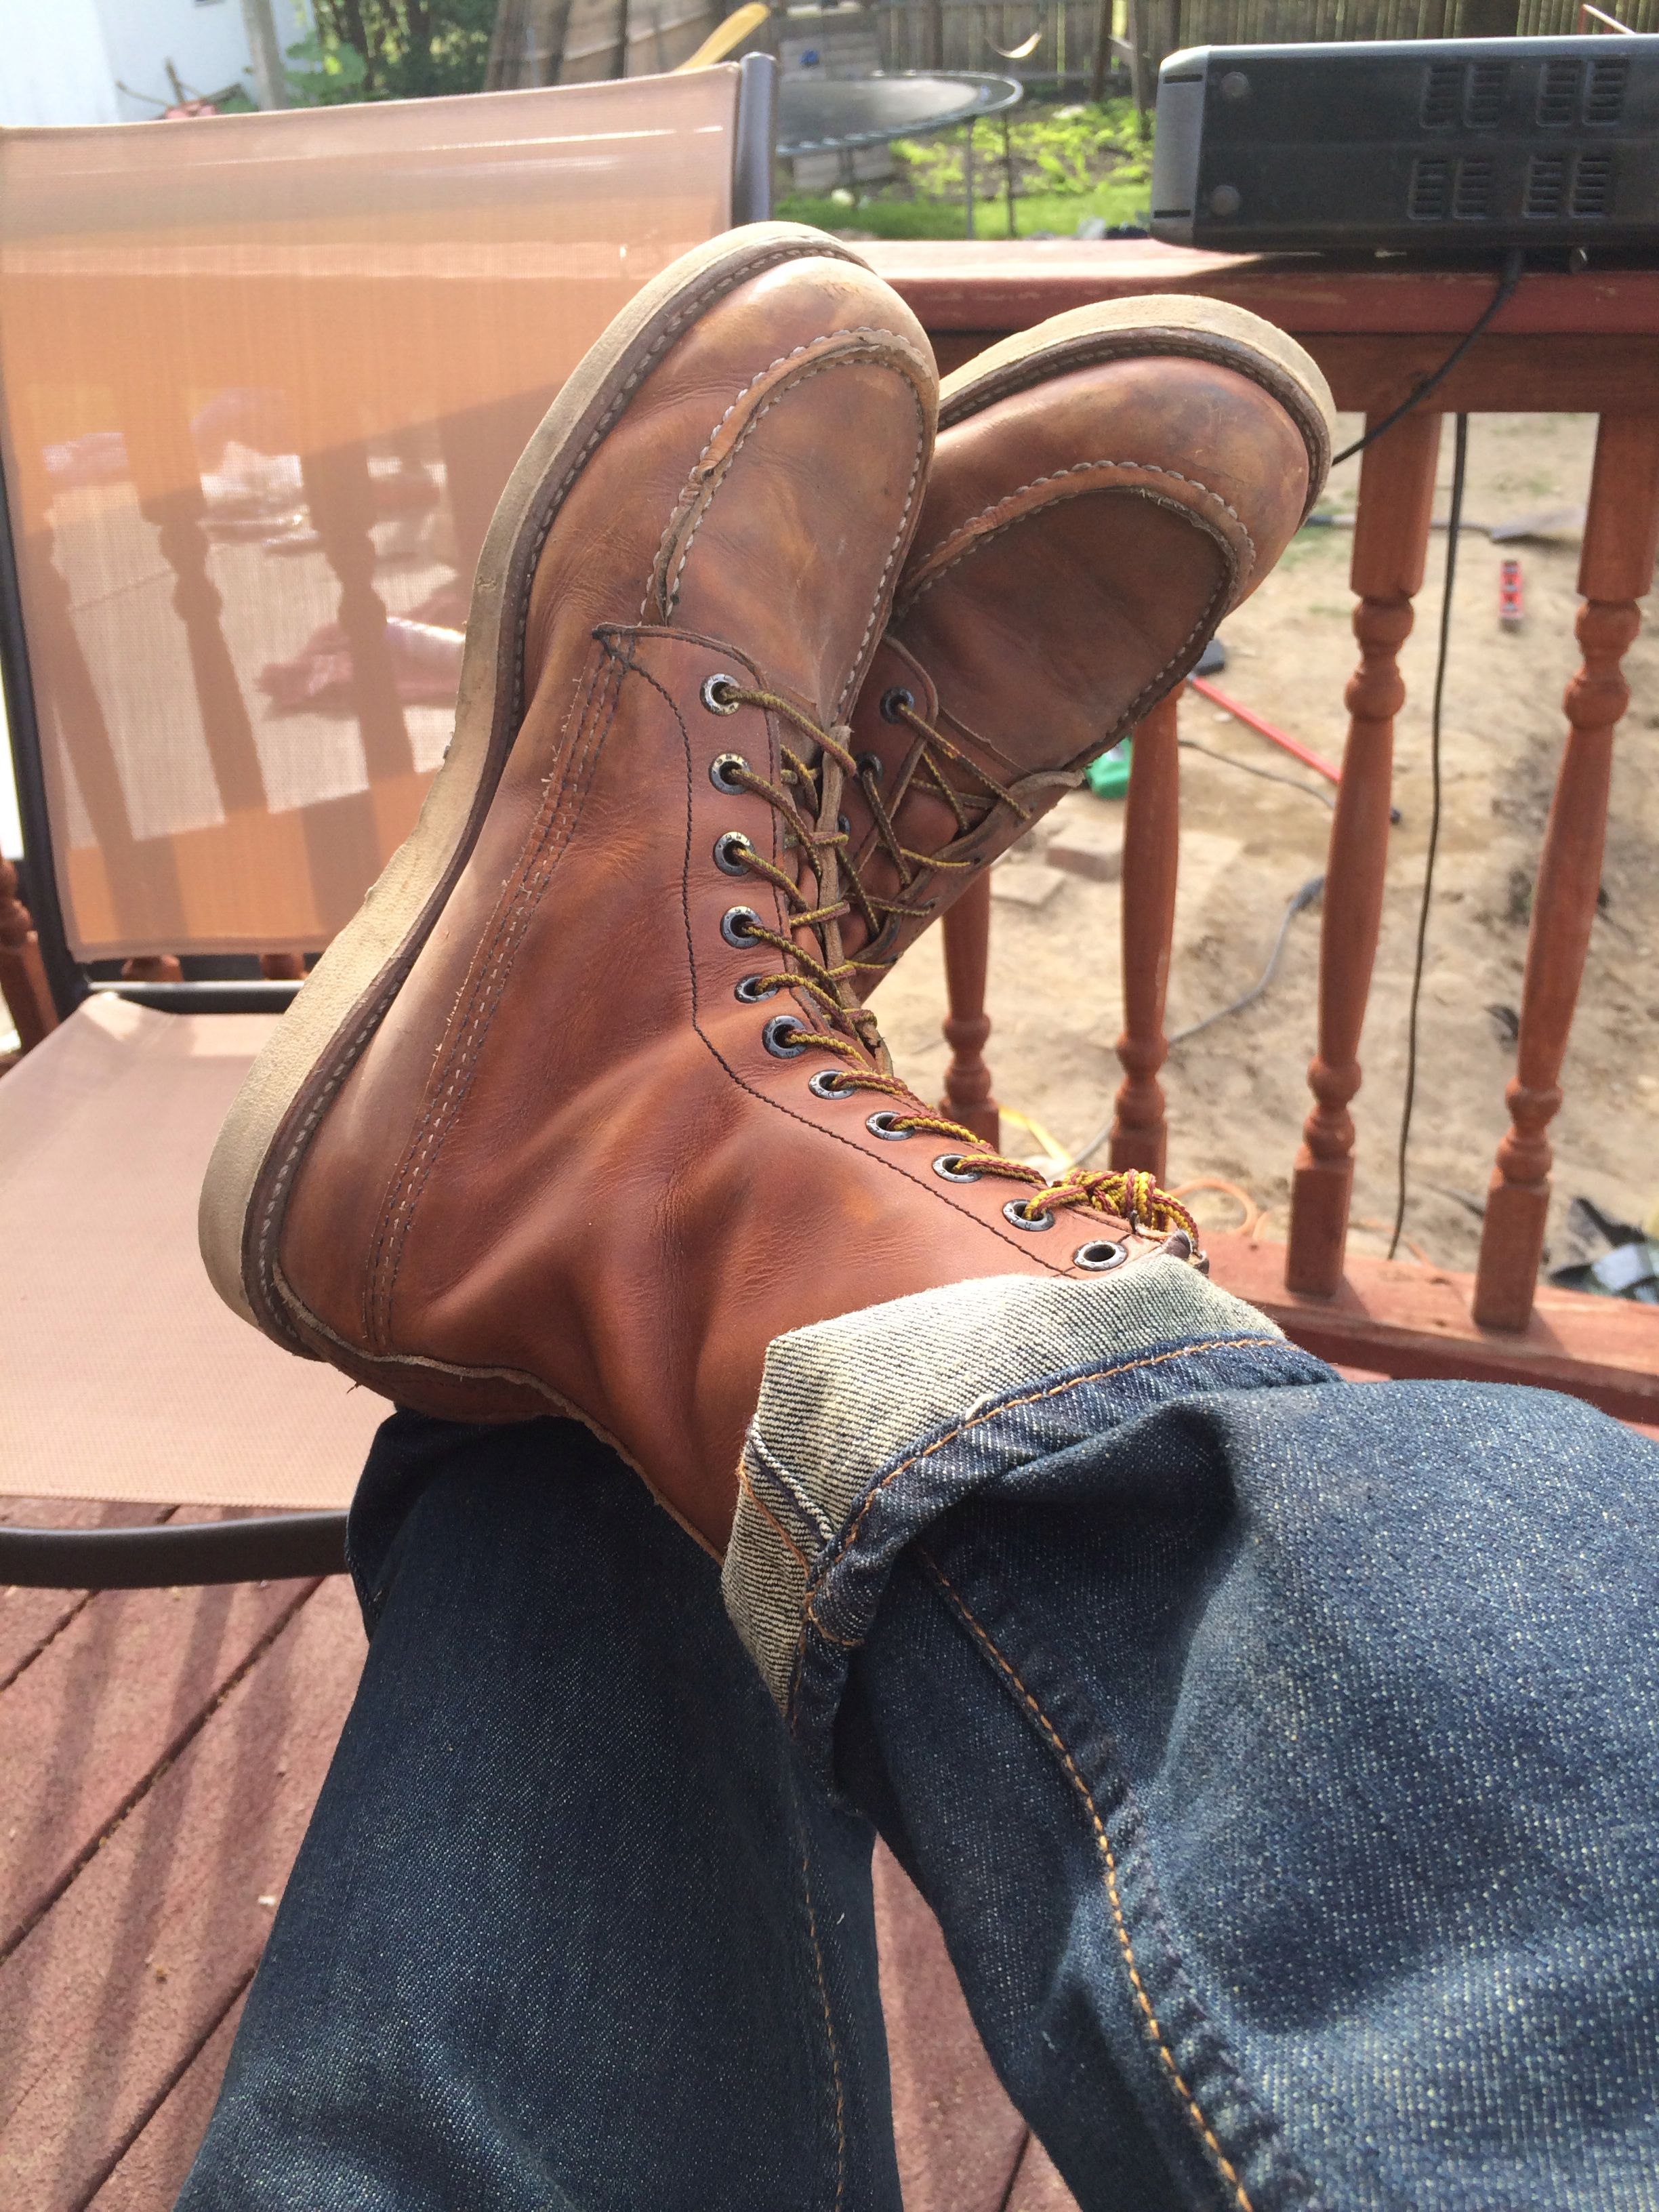 8c4d6ba66e7 877 Red Wings | Red wings in 2019 | Red wing boots, Red wing shoes ...